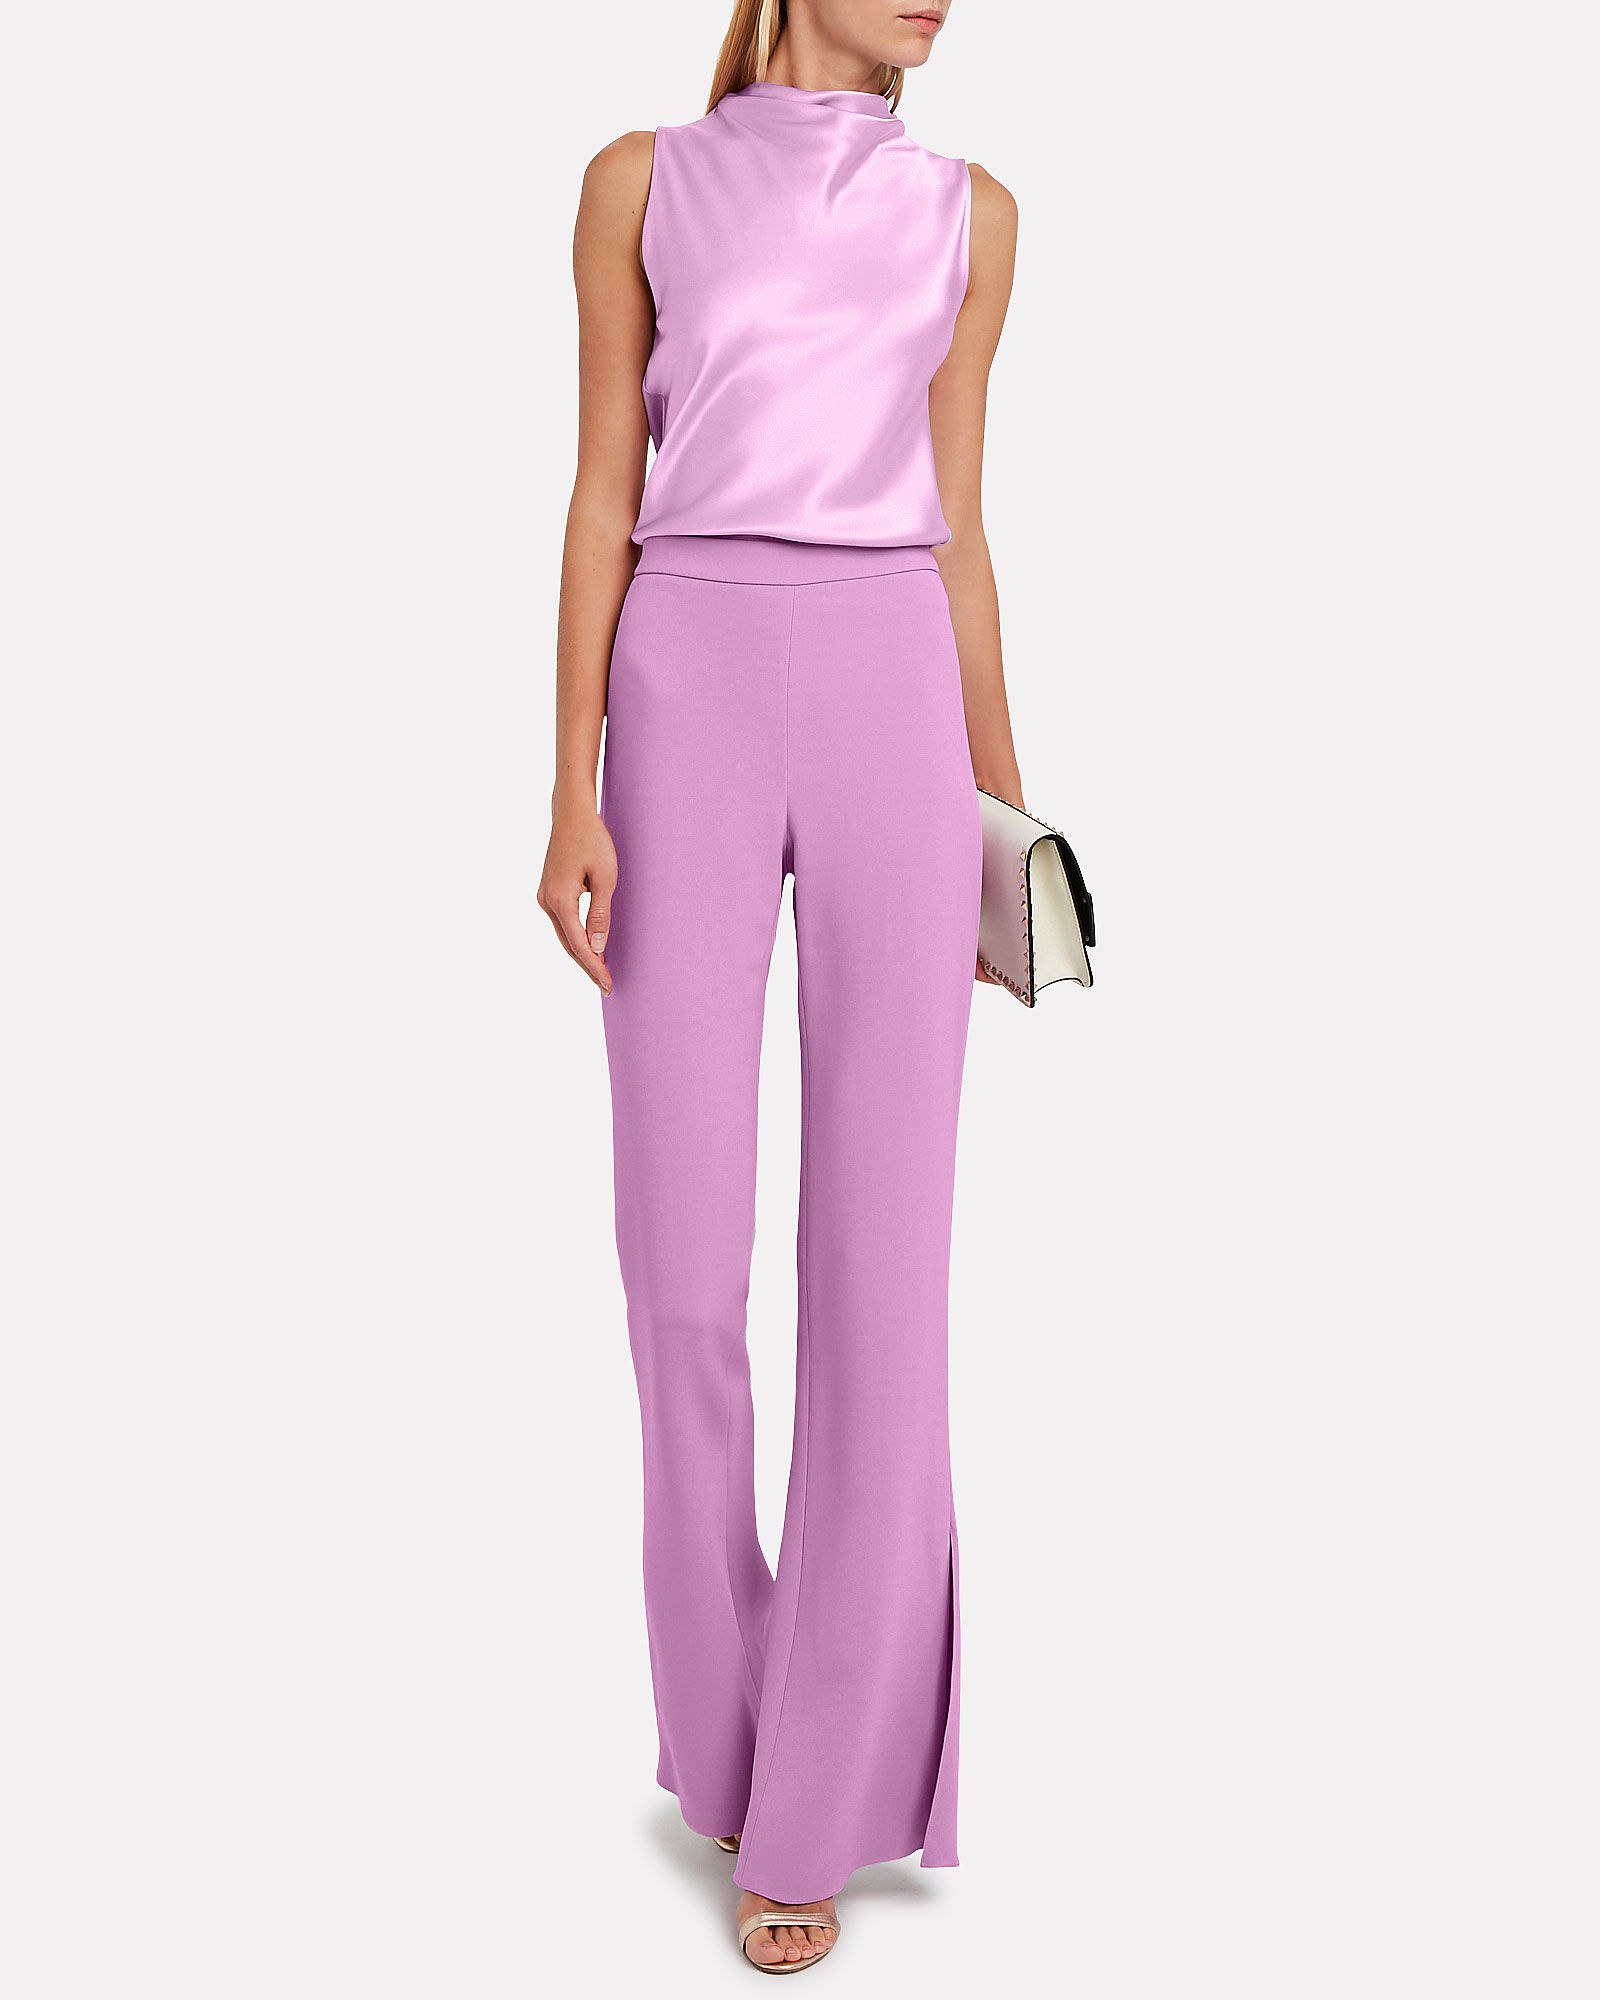 High-Waist Cady Flared Trousers, PURPLE-LT, hi-res